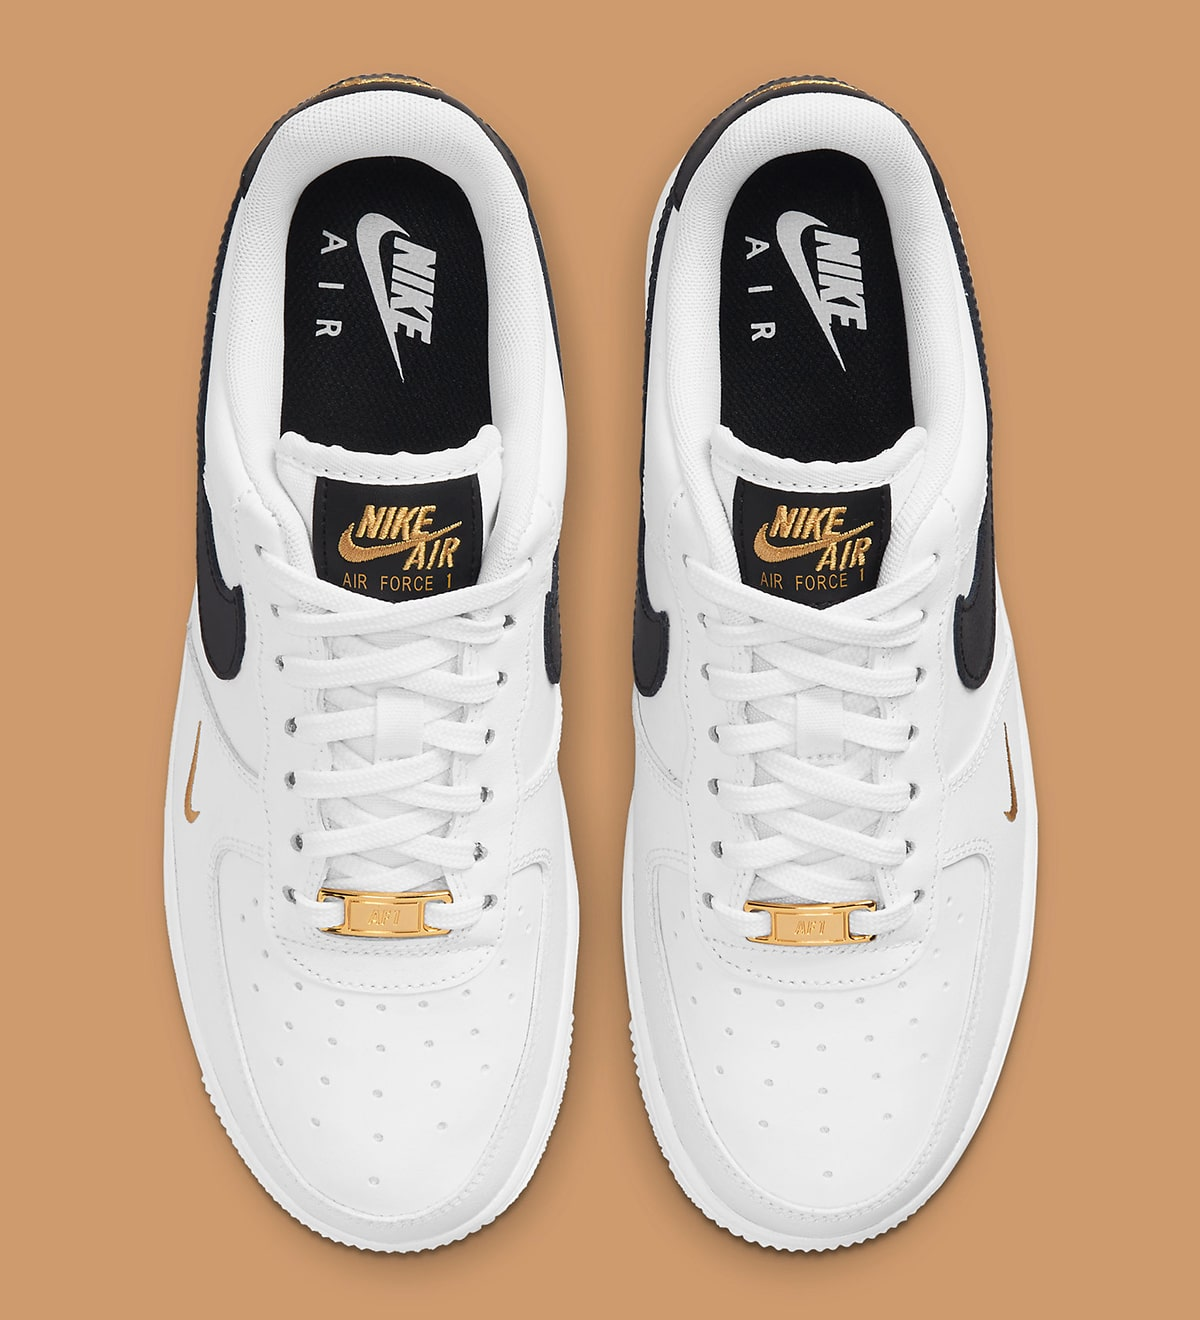 The Air Force 1 Gets Elevated With Elegant Gold Accents   HOUSE OF ...